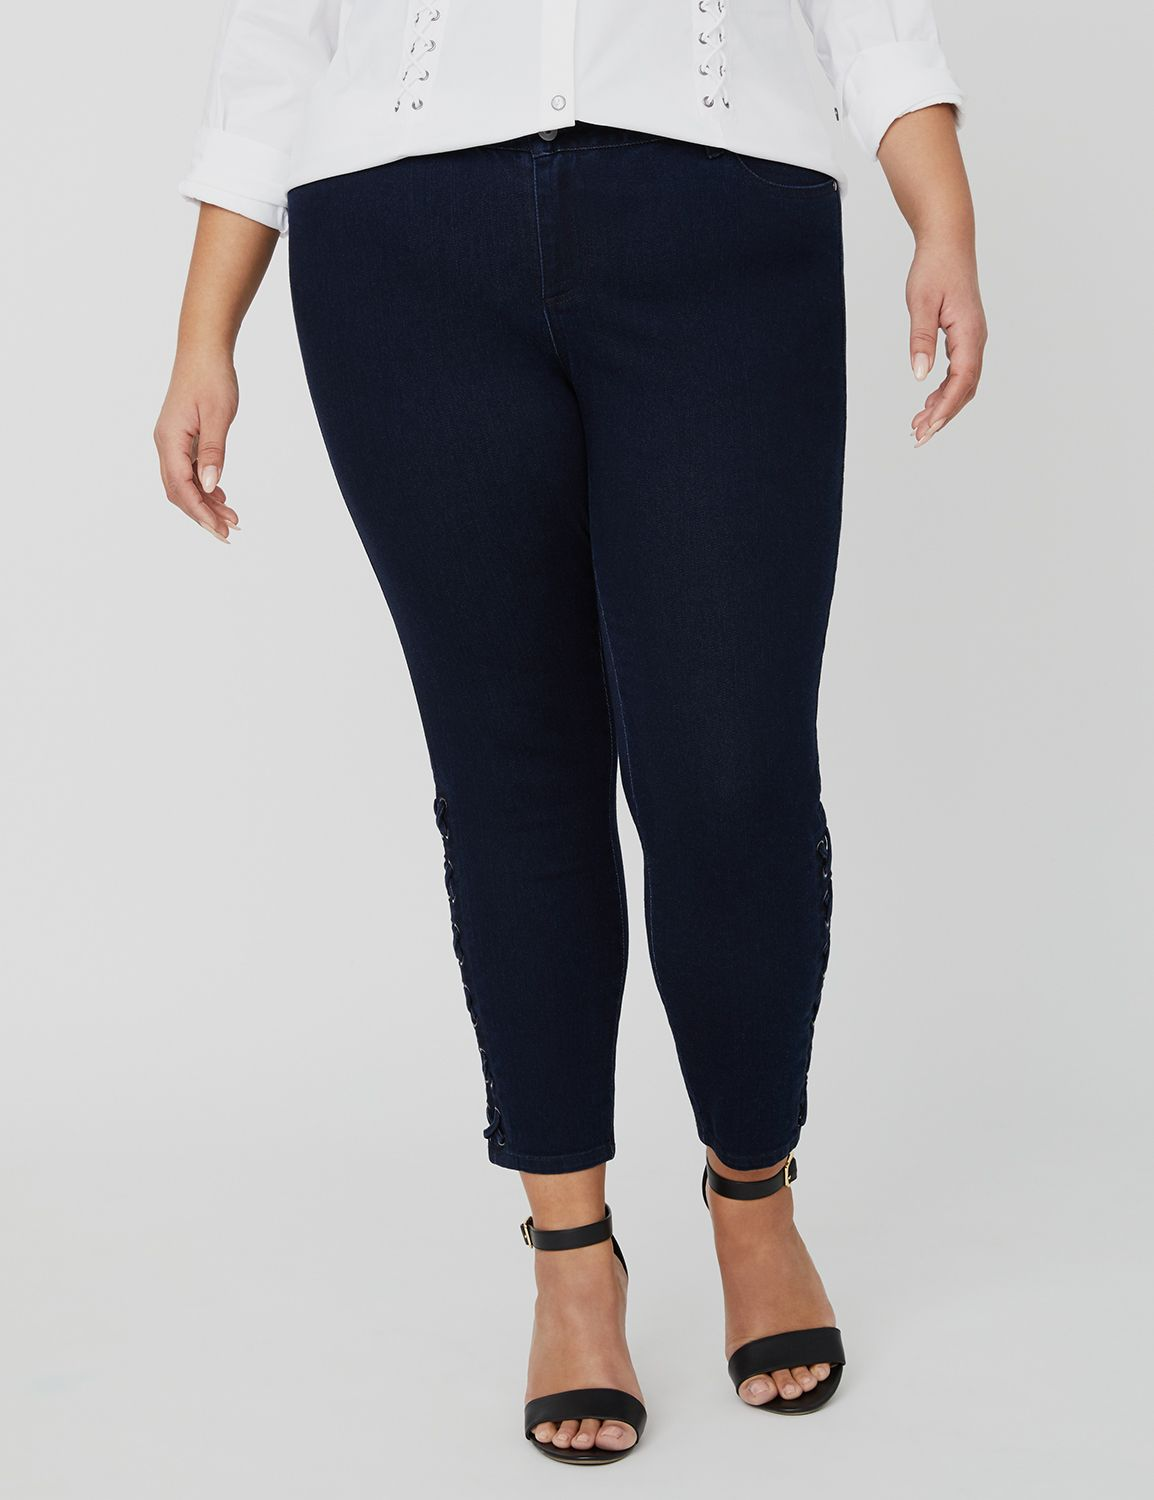 Curvy Collection Lace-Up Jean 1088607 Curvy Collection Sateen (11 MP-300099467